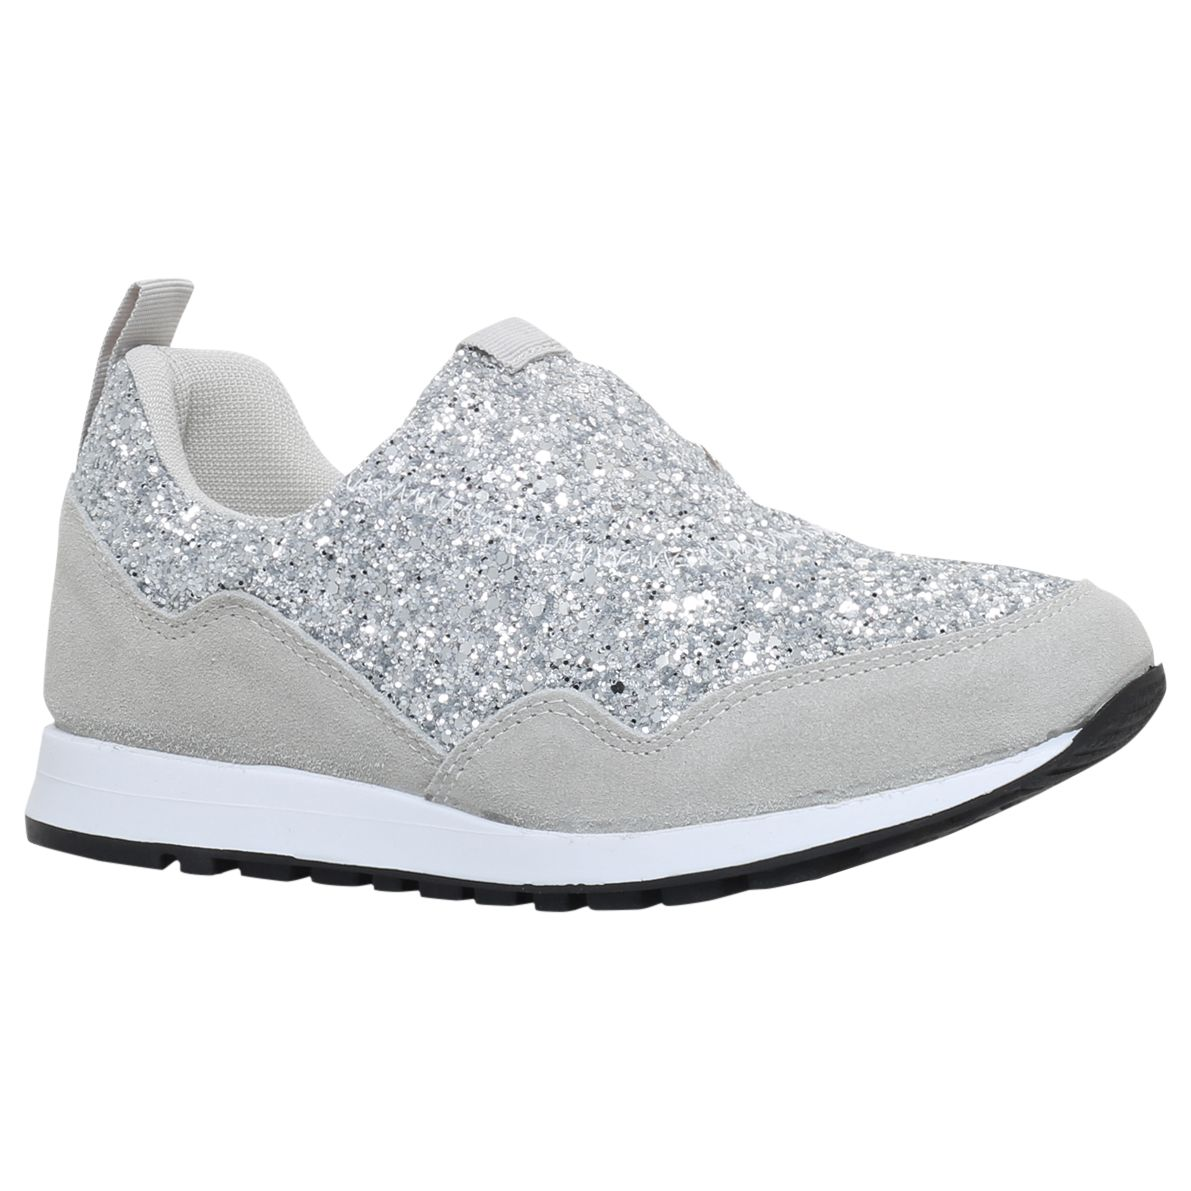 KG by Kurt Geiger KG by Kurt Geiger Logical Fabric Trainers